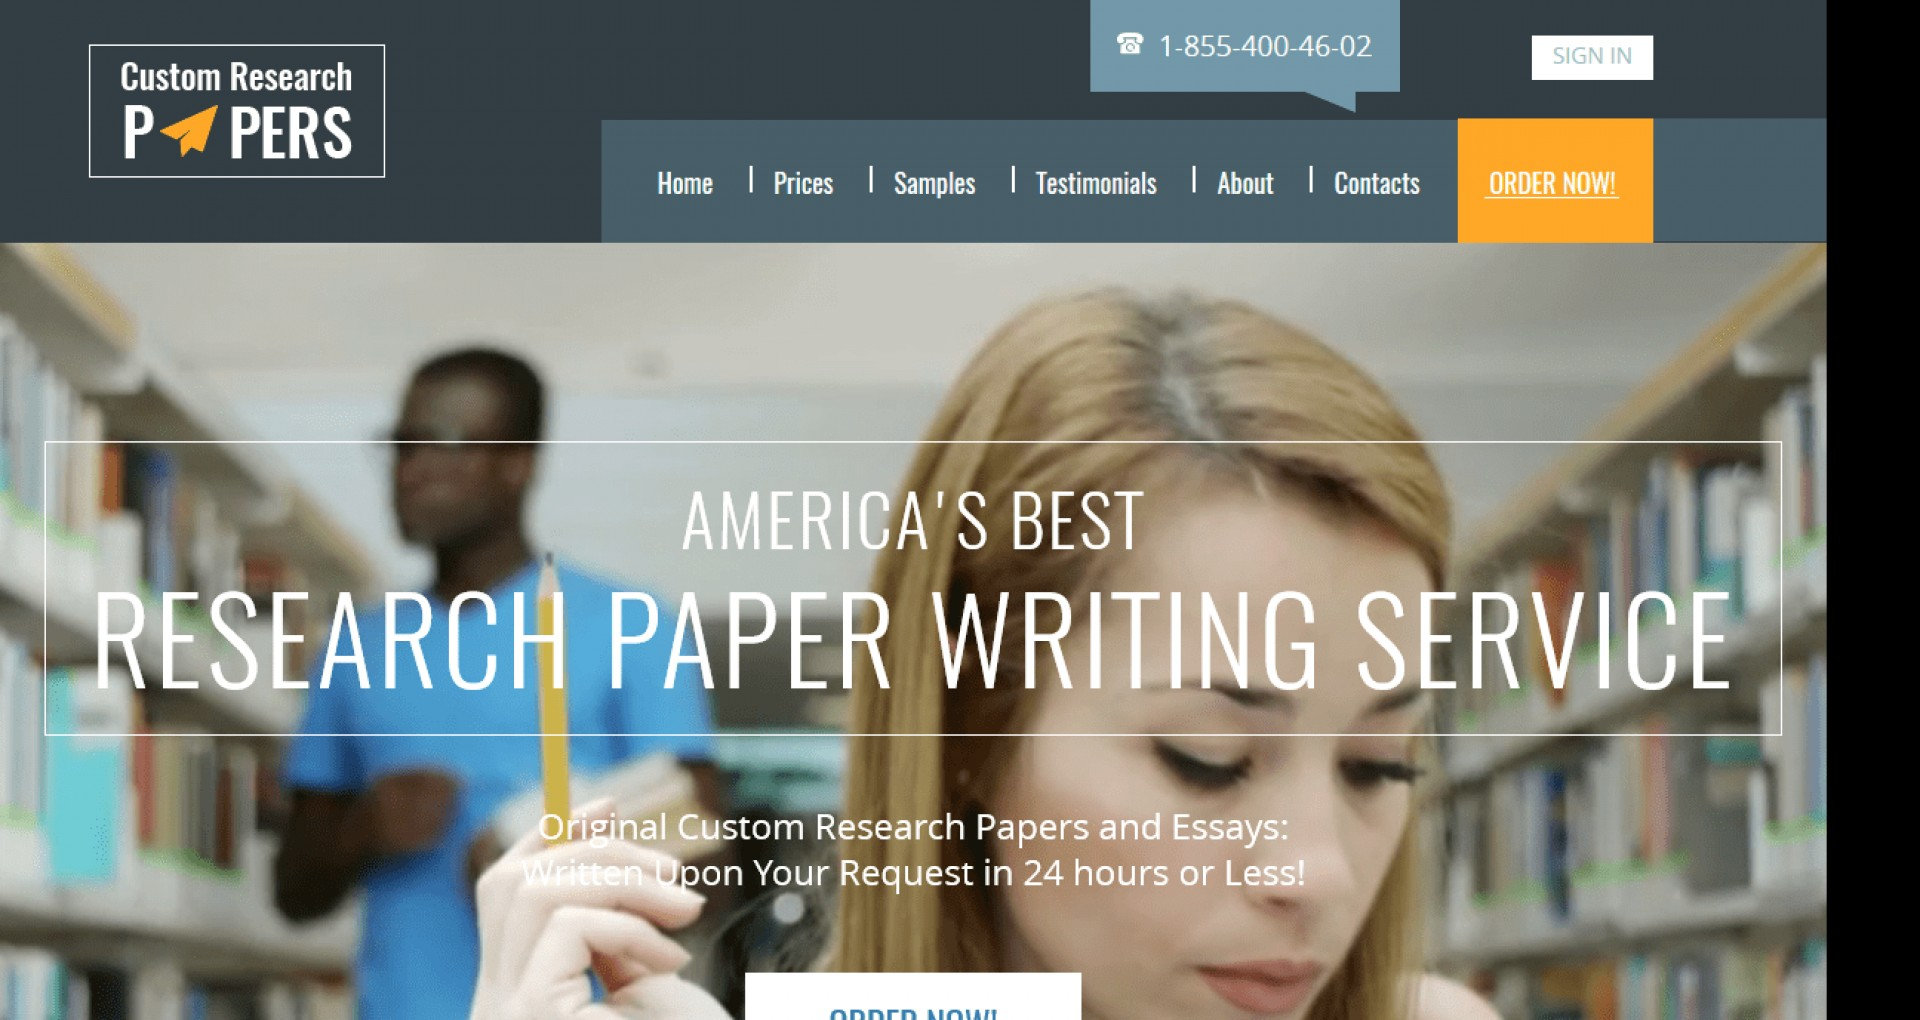 020 Customresearchpapers Us Review Research Paper Best Writing Services In Top Usa 1920